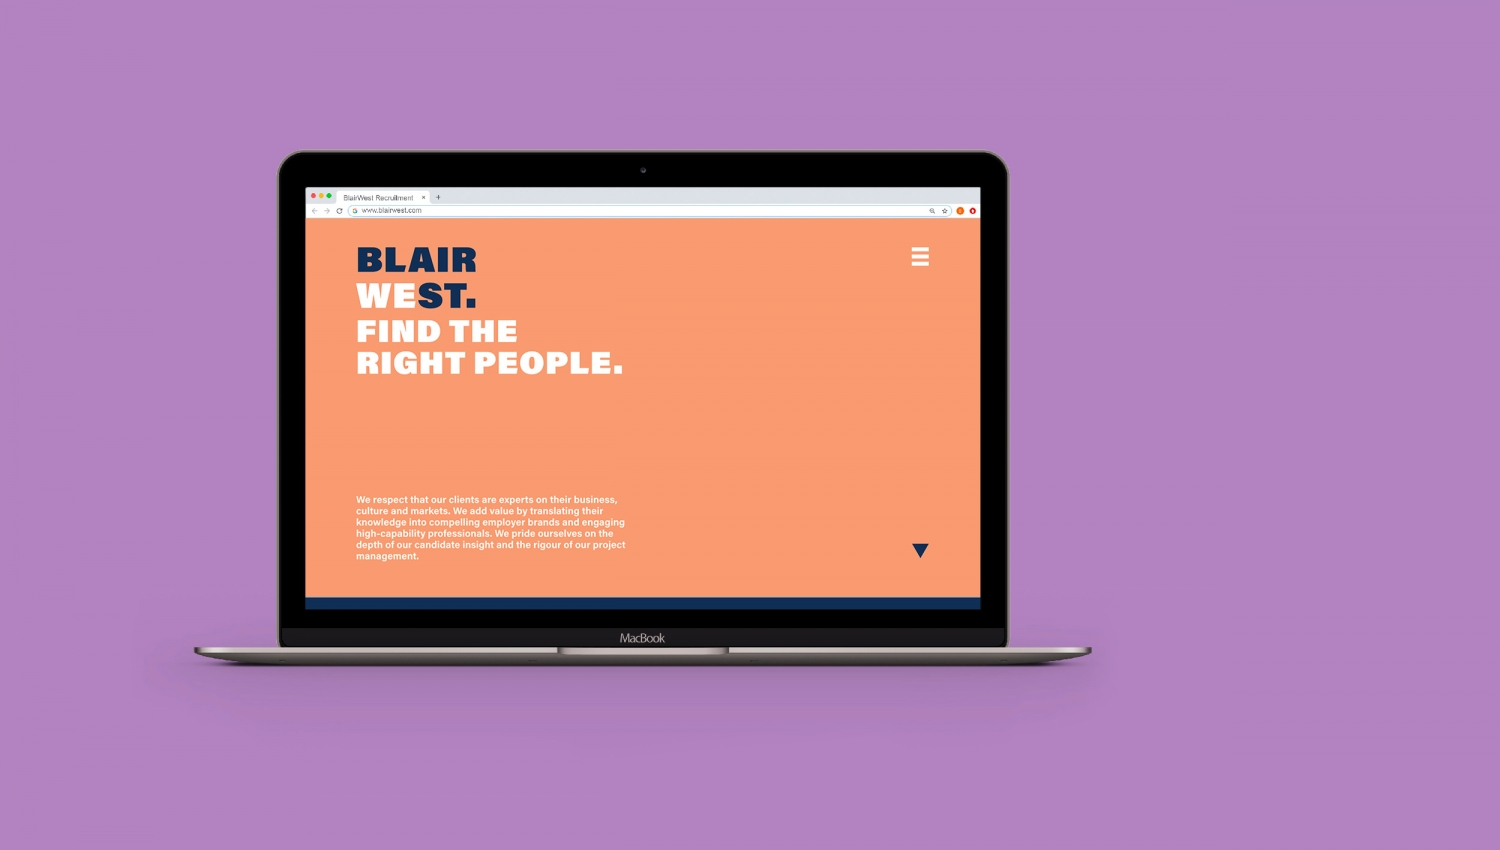 Blair West recruitment agency brand identity and website by Altogether Creative.